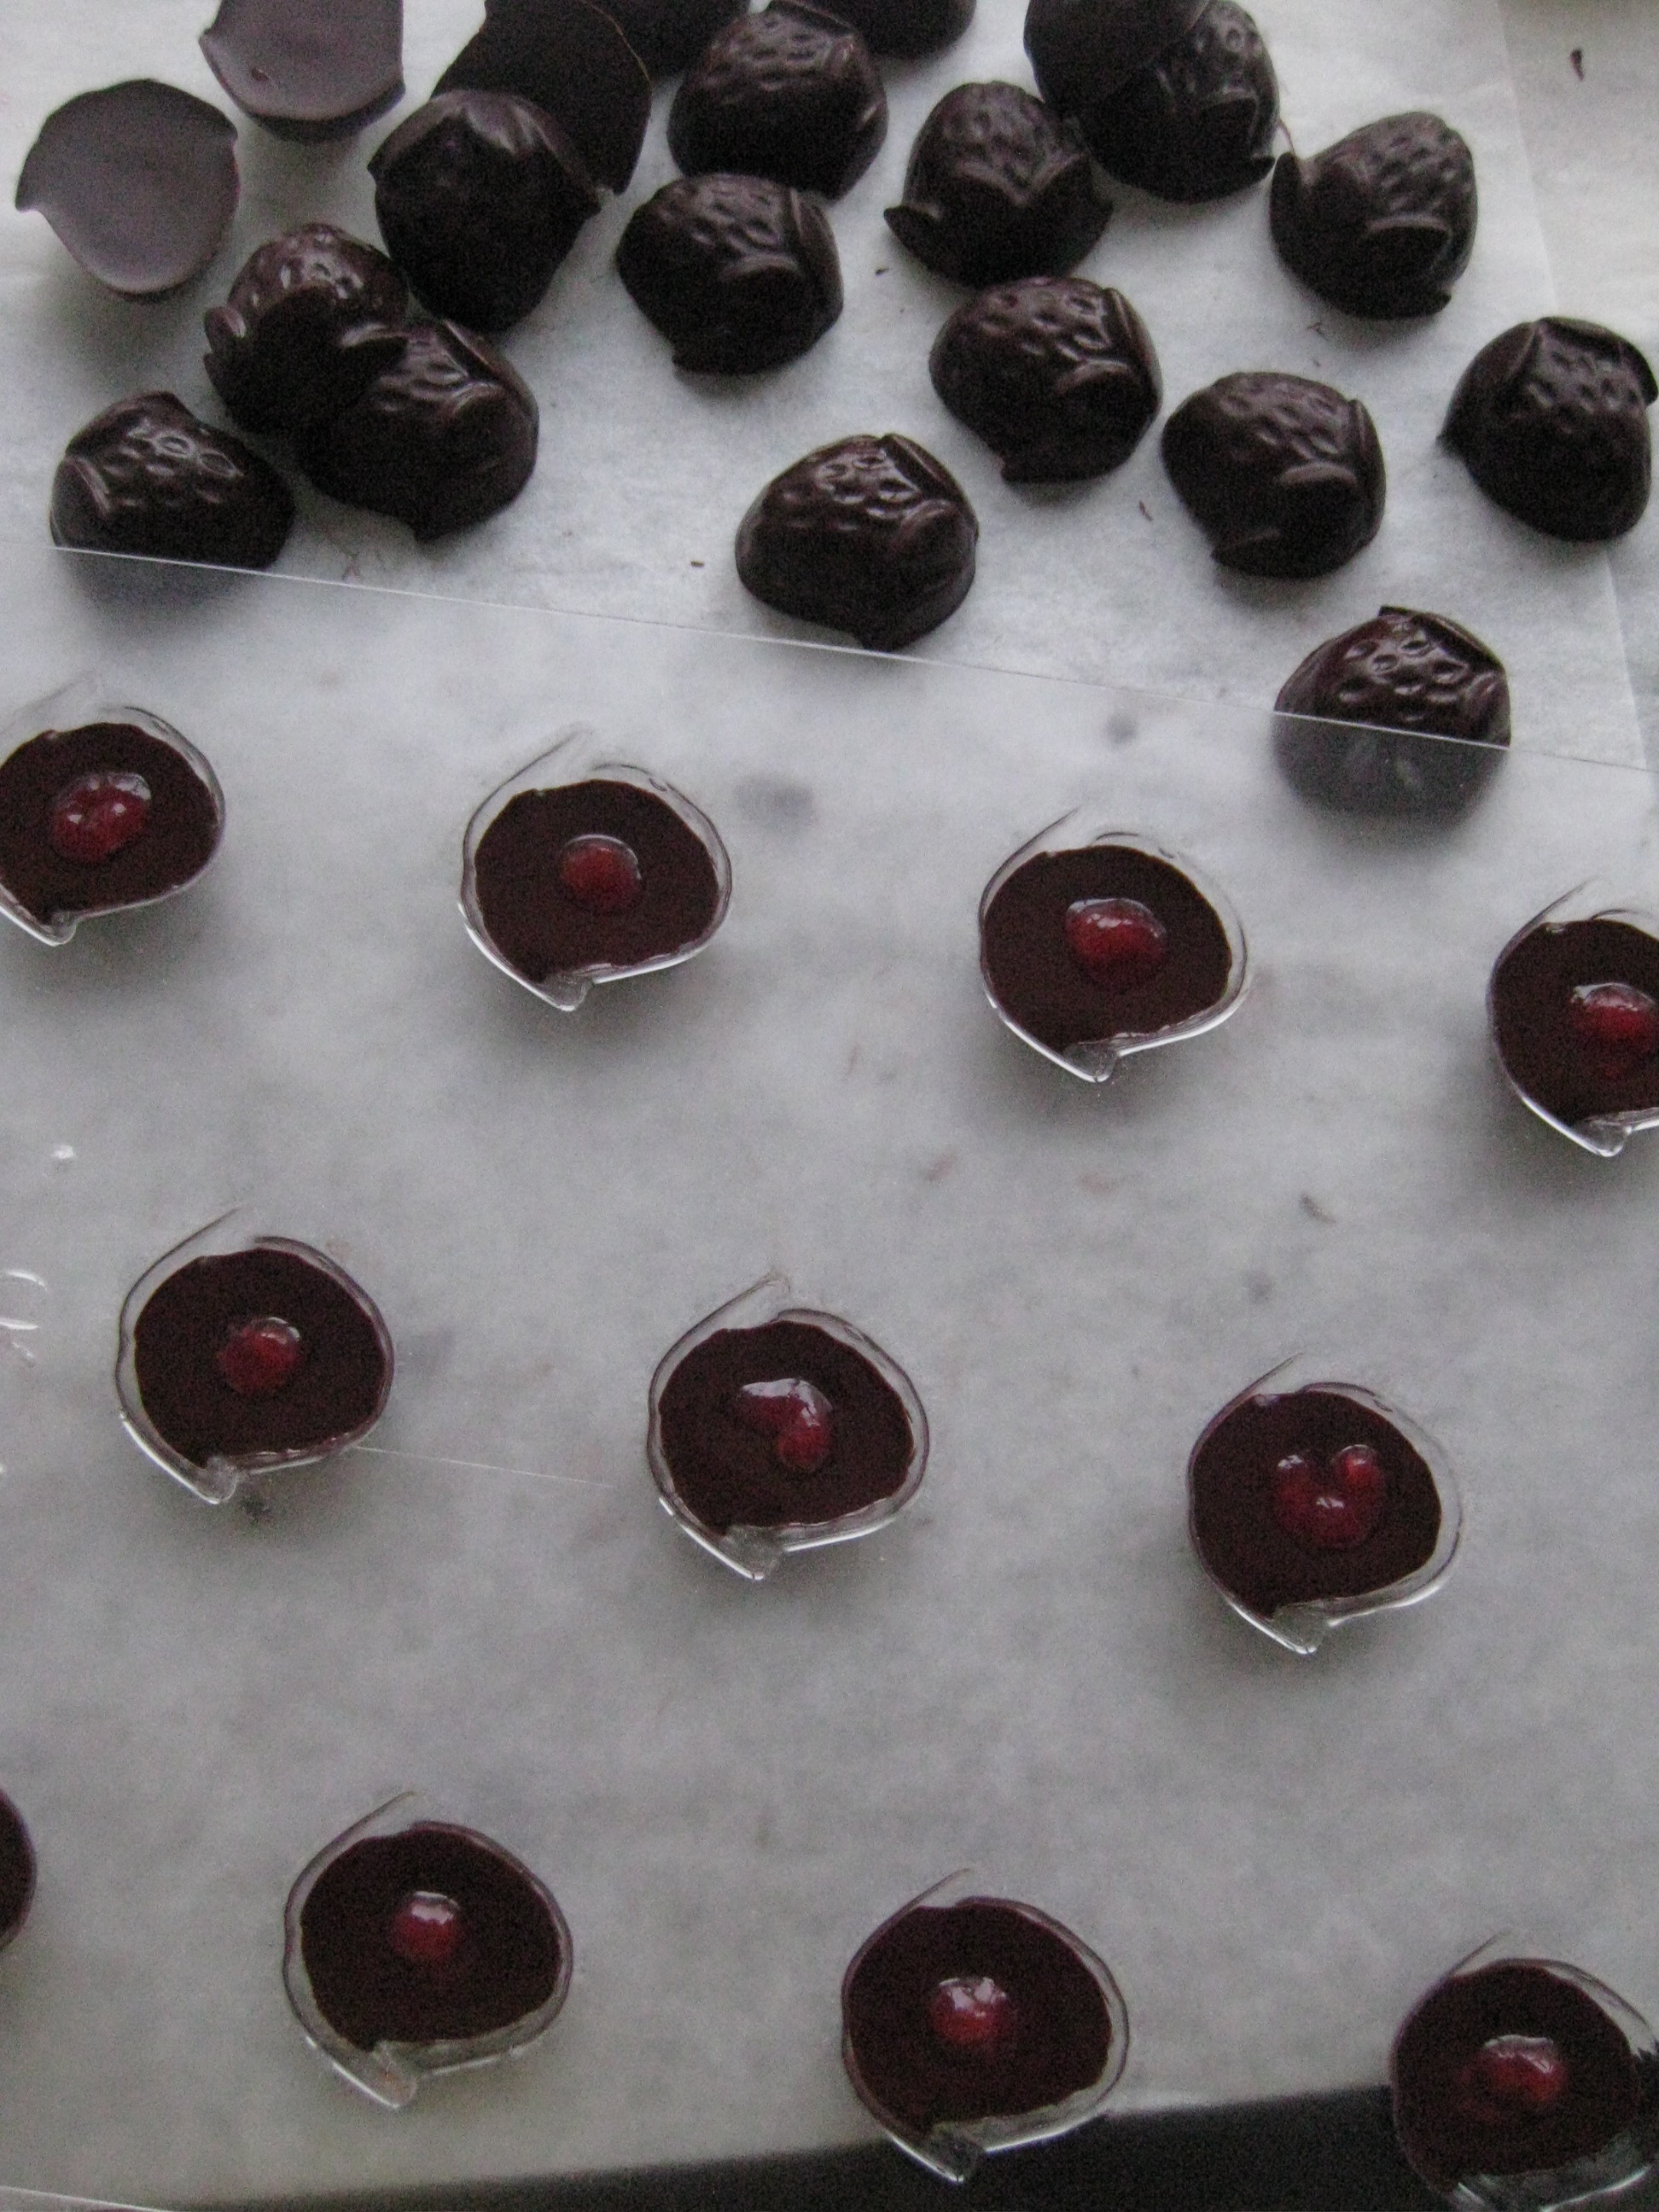 chocolats-noirs-coeur-pulpe-framboise